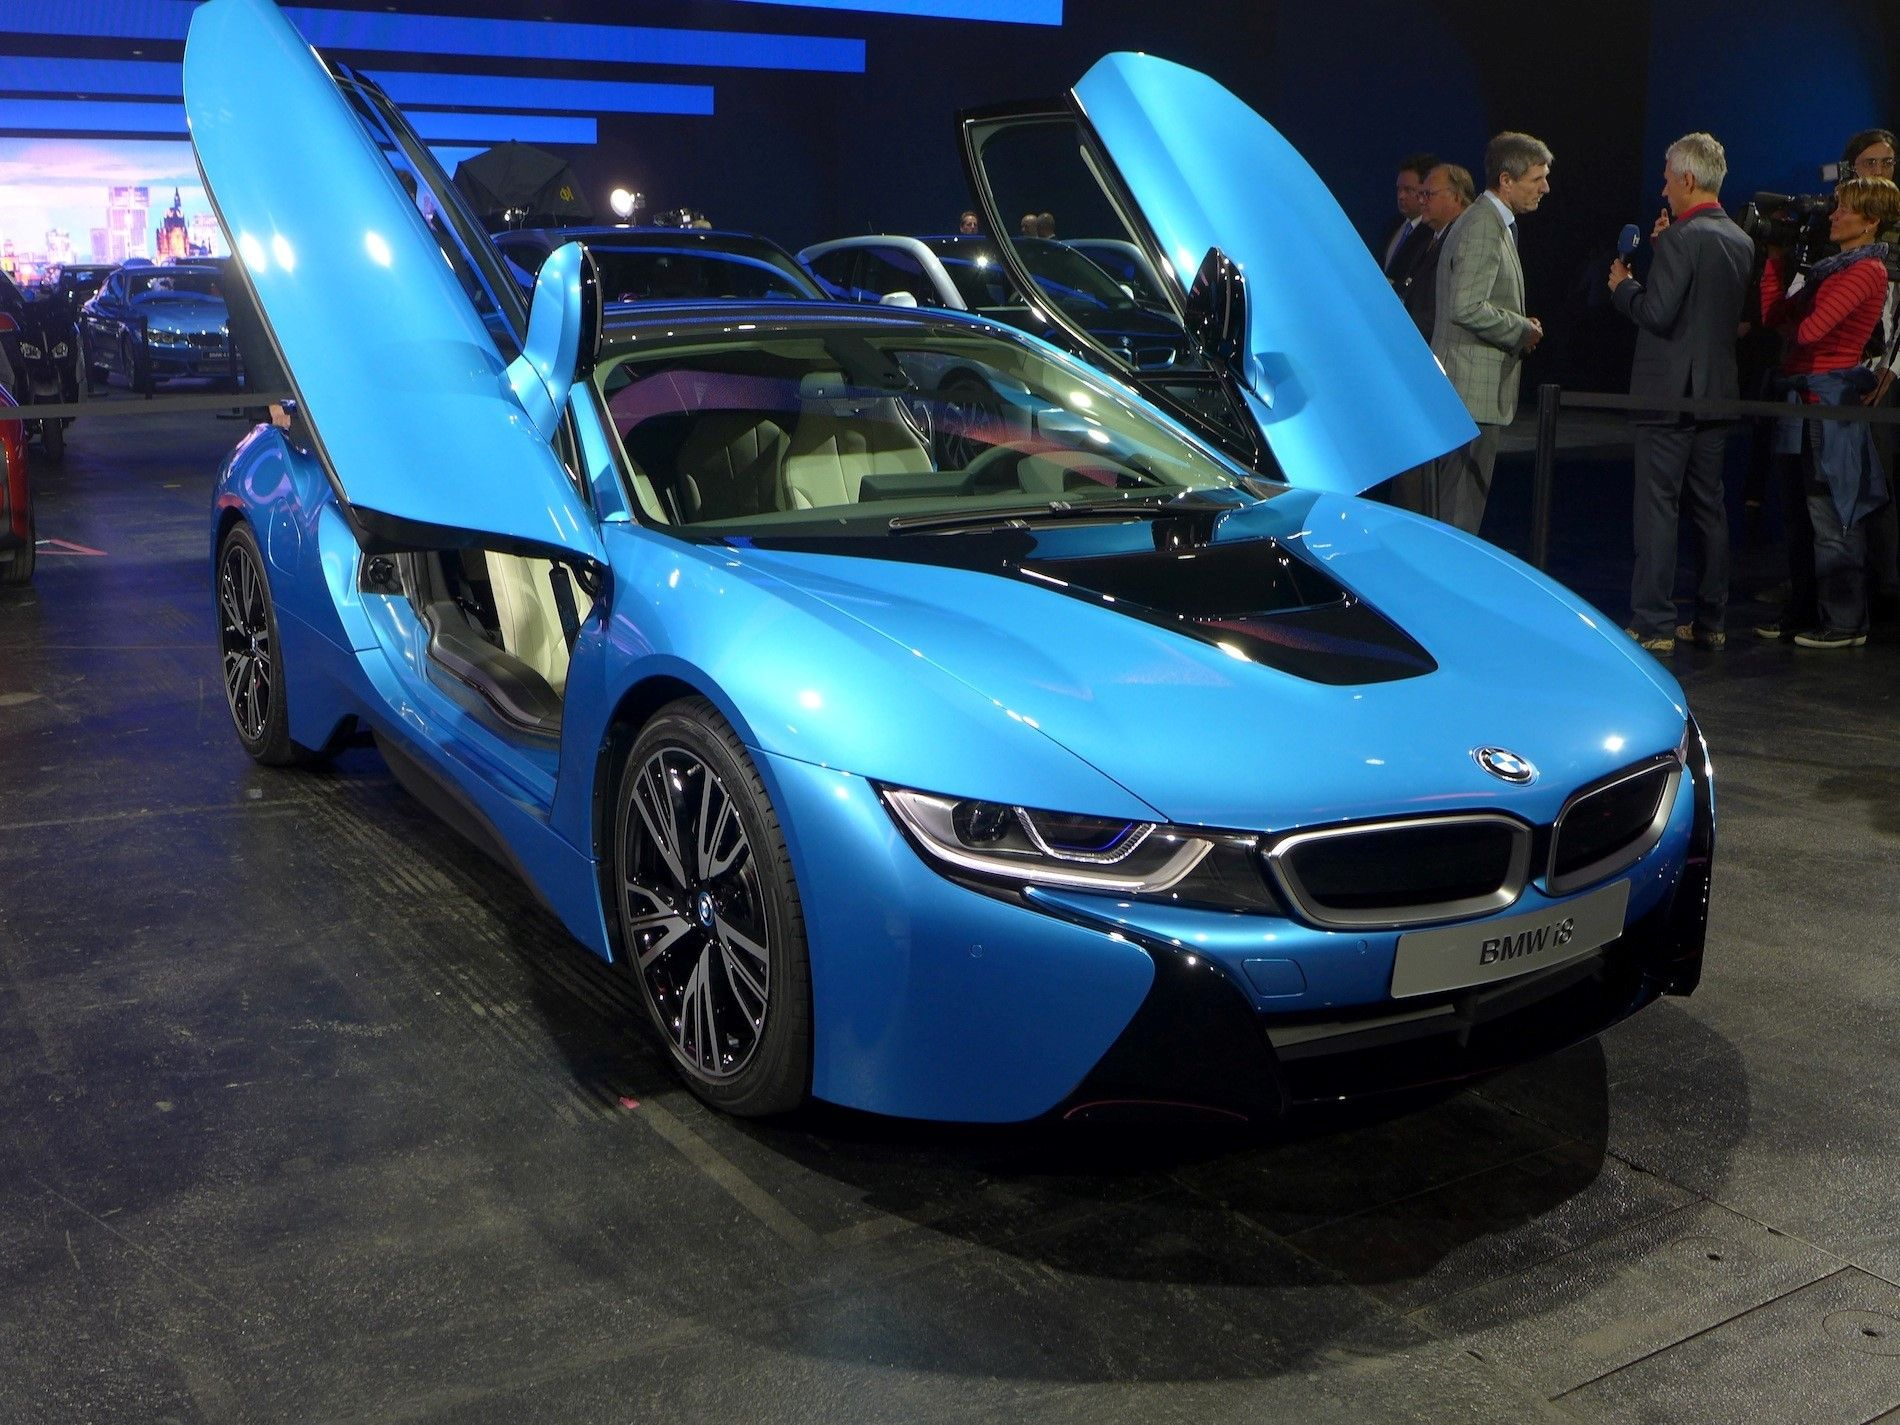 Protonic Blue Bmw I8 Luxury Two Seater Car With Open Door Wallpapers Jpg 1900 1425 Bmw Latest Bmw Super Cars